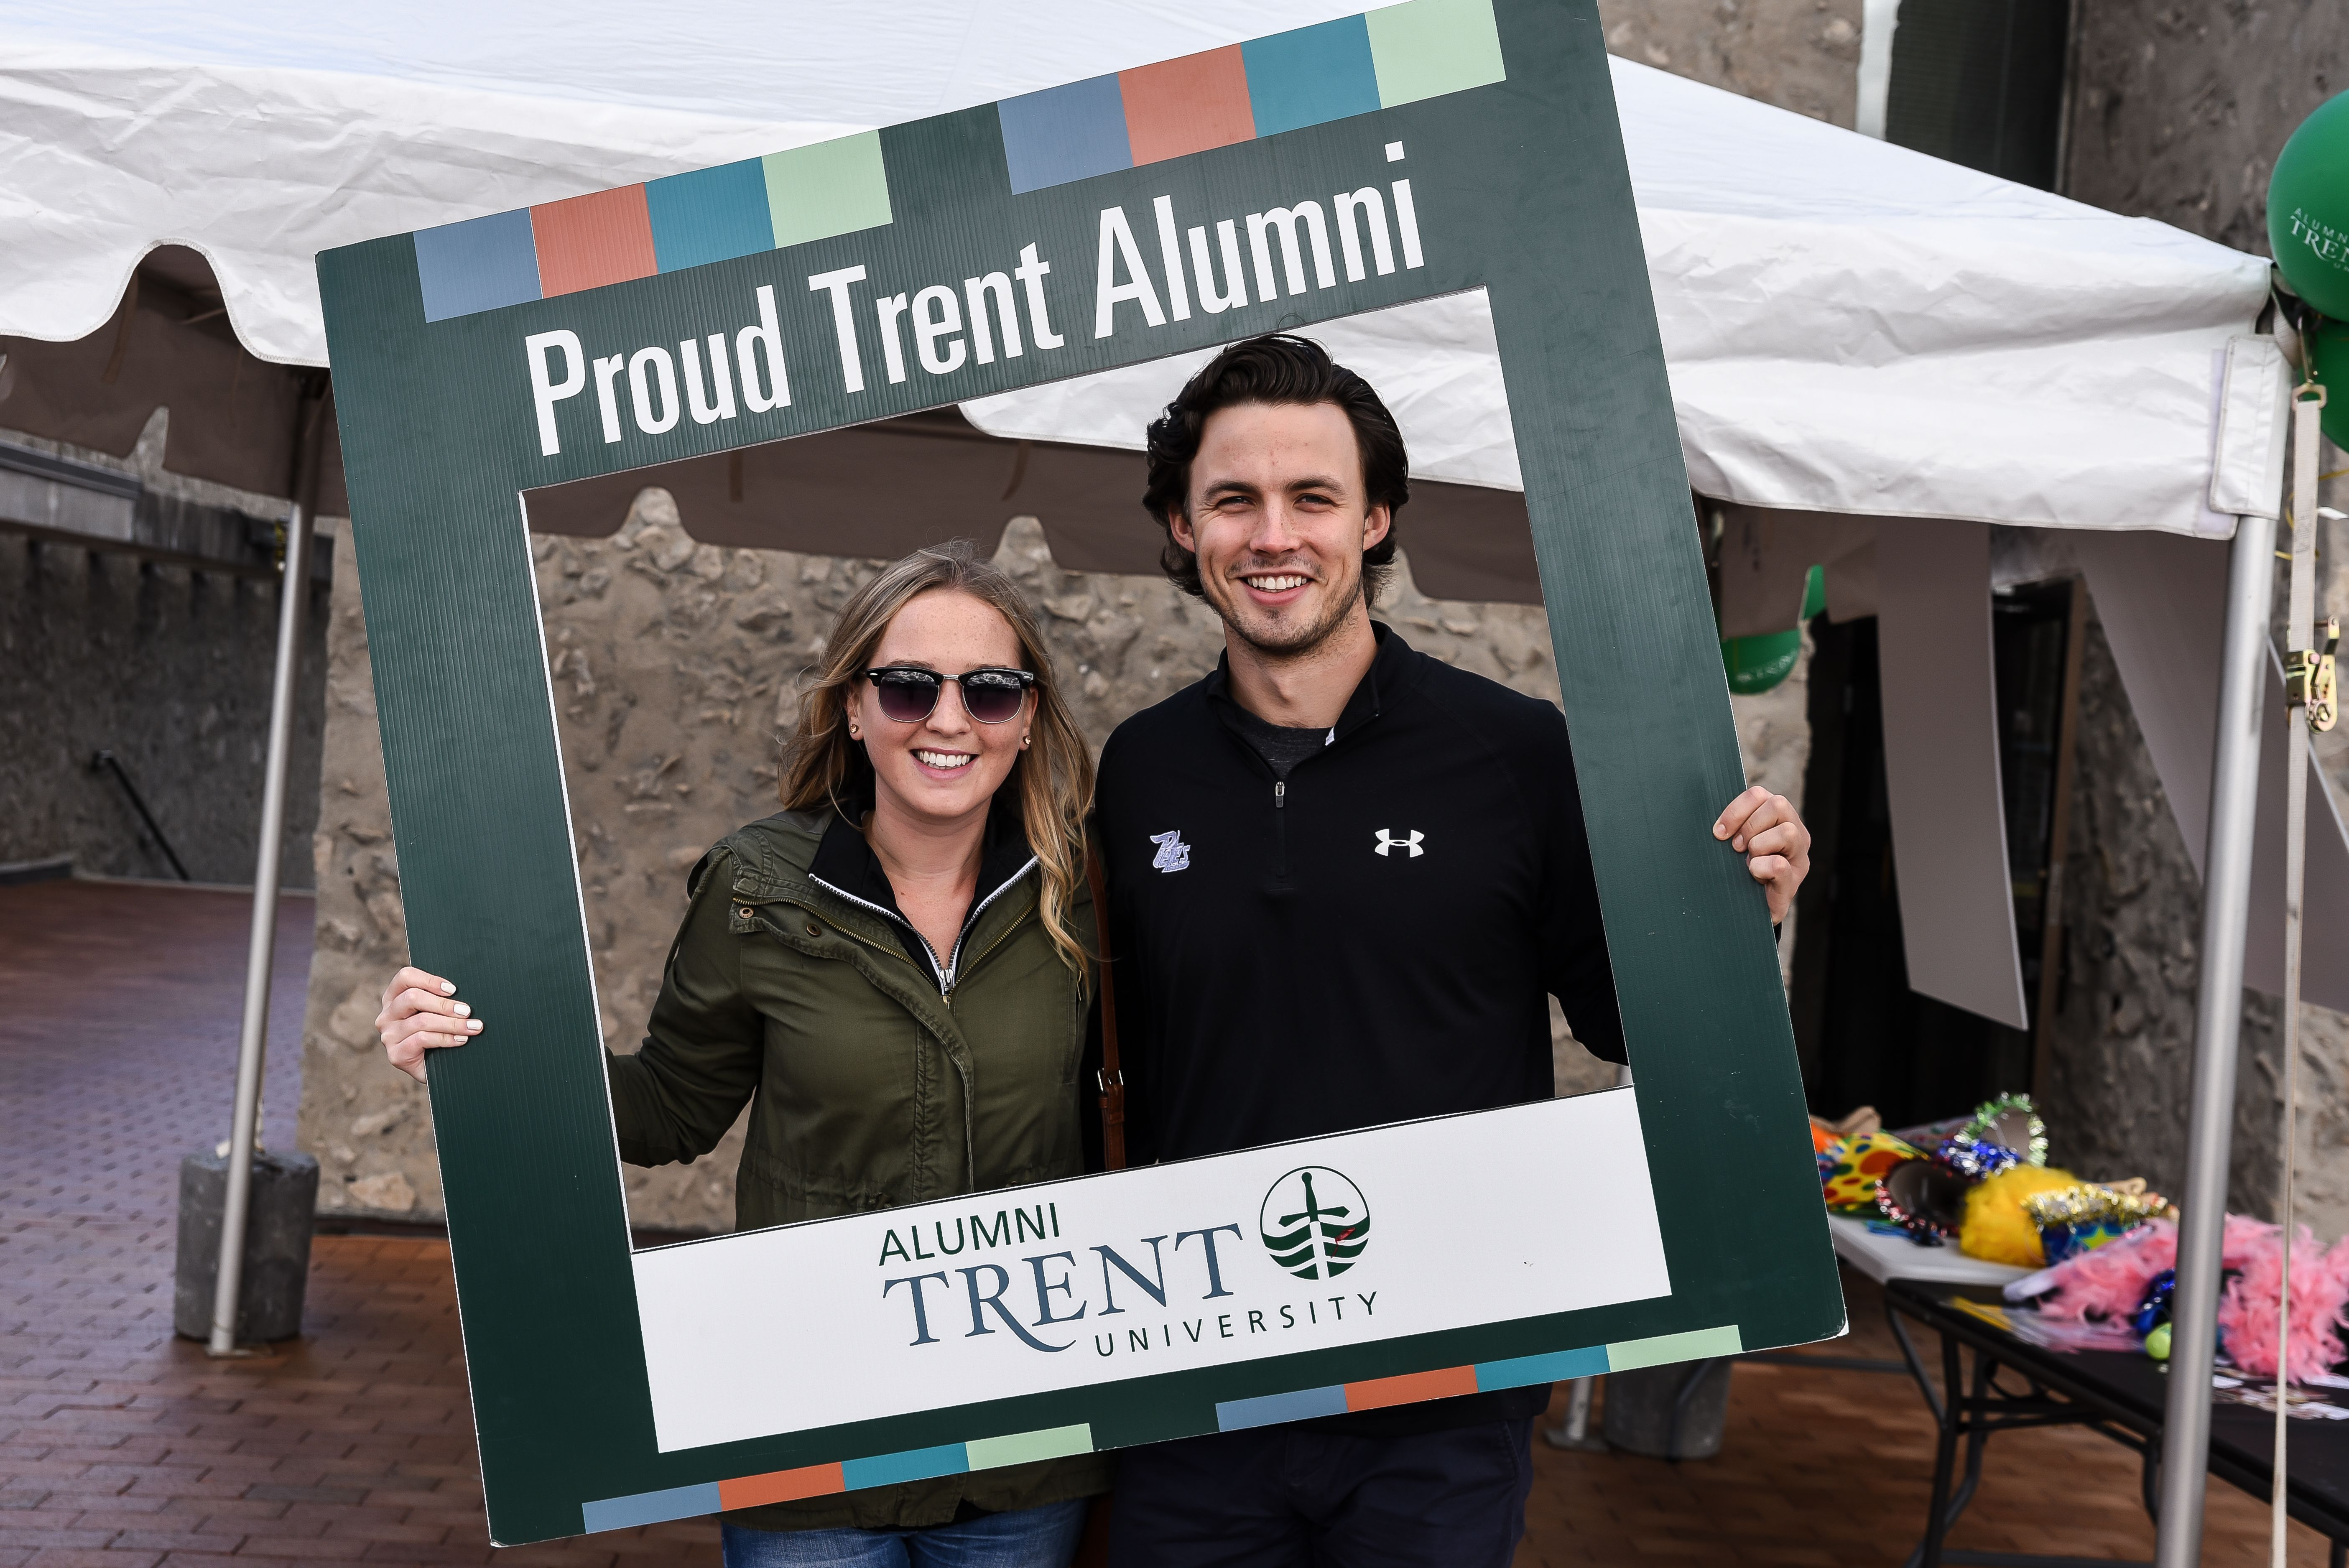 a couple holding the Proud Trent Alumni sign